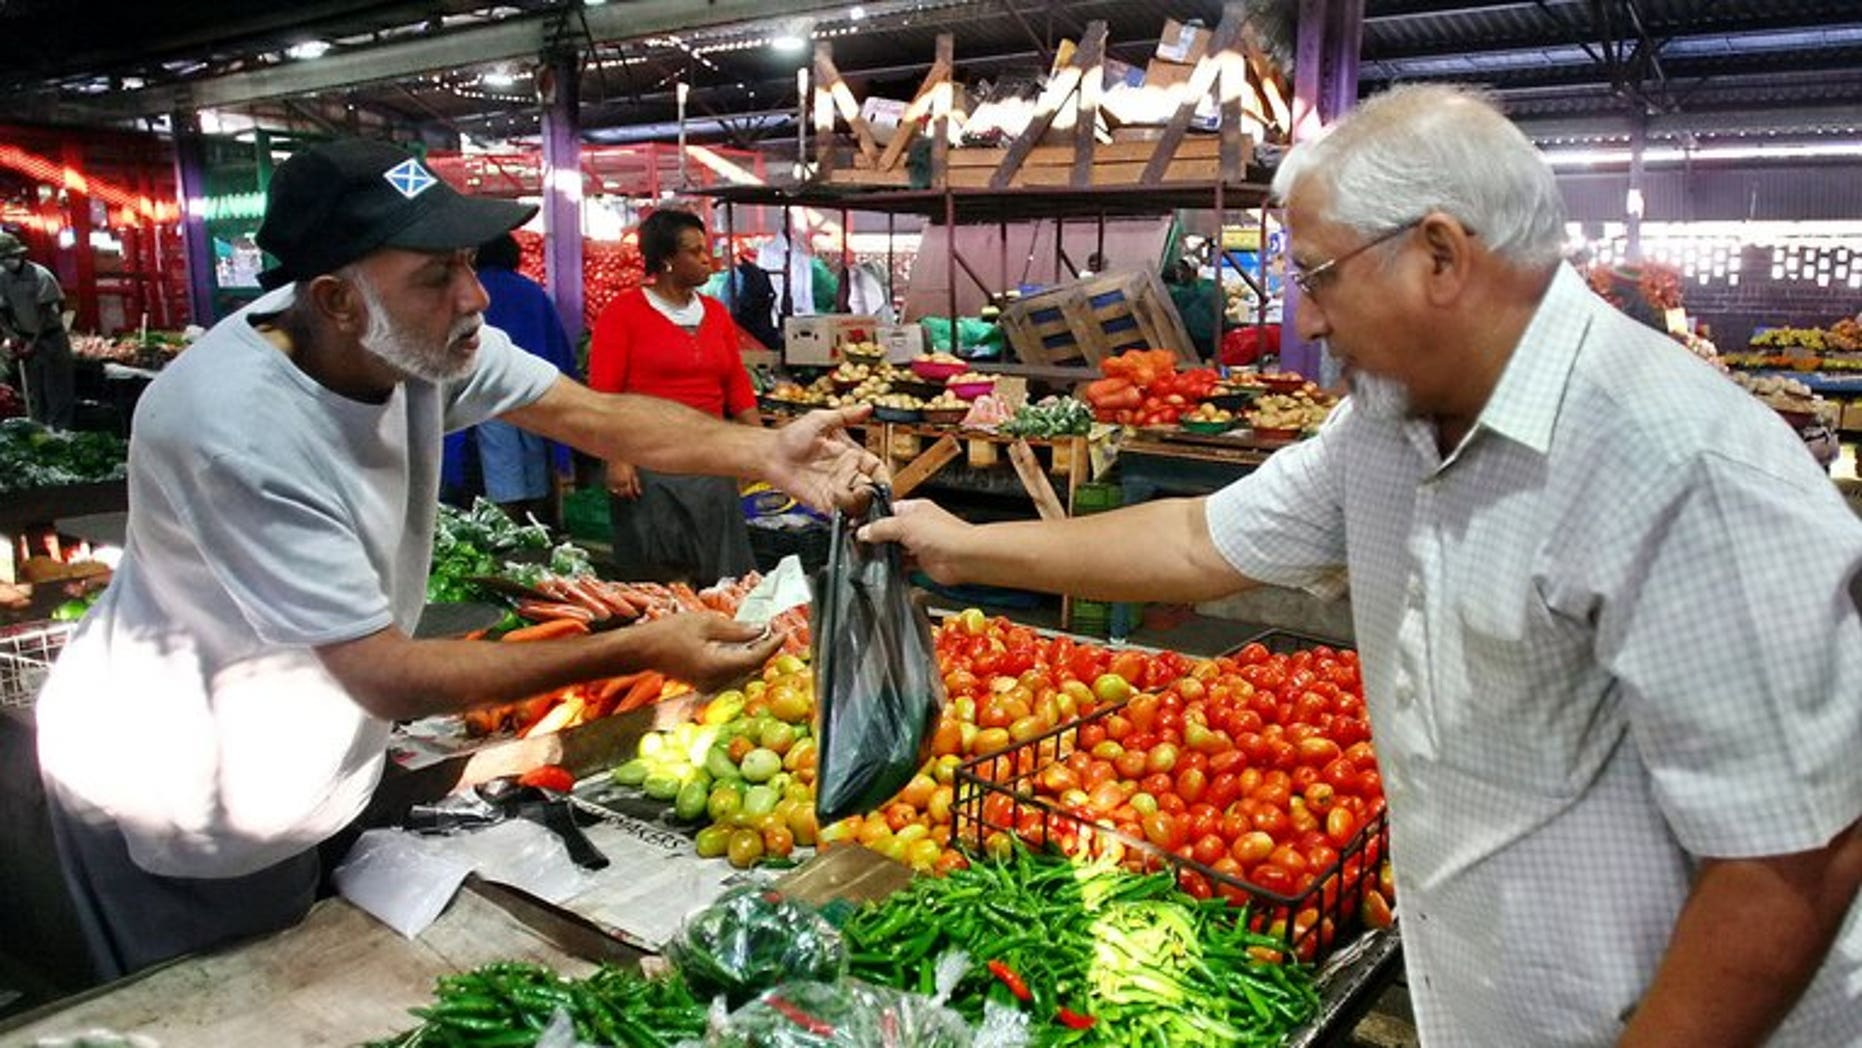 A customer pays a vendor at a market in Durban on May 22, 2010. South Africa's annual inflation rate rose to 6.4 percent in August, official figures showed, well above the central bank's target.